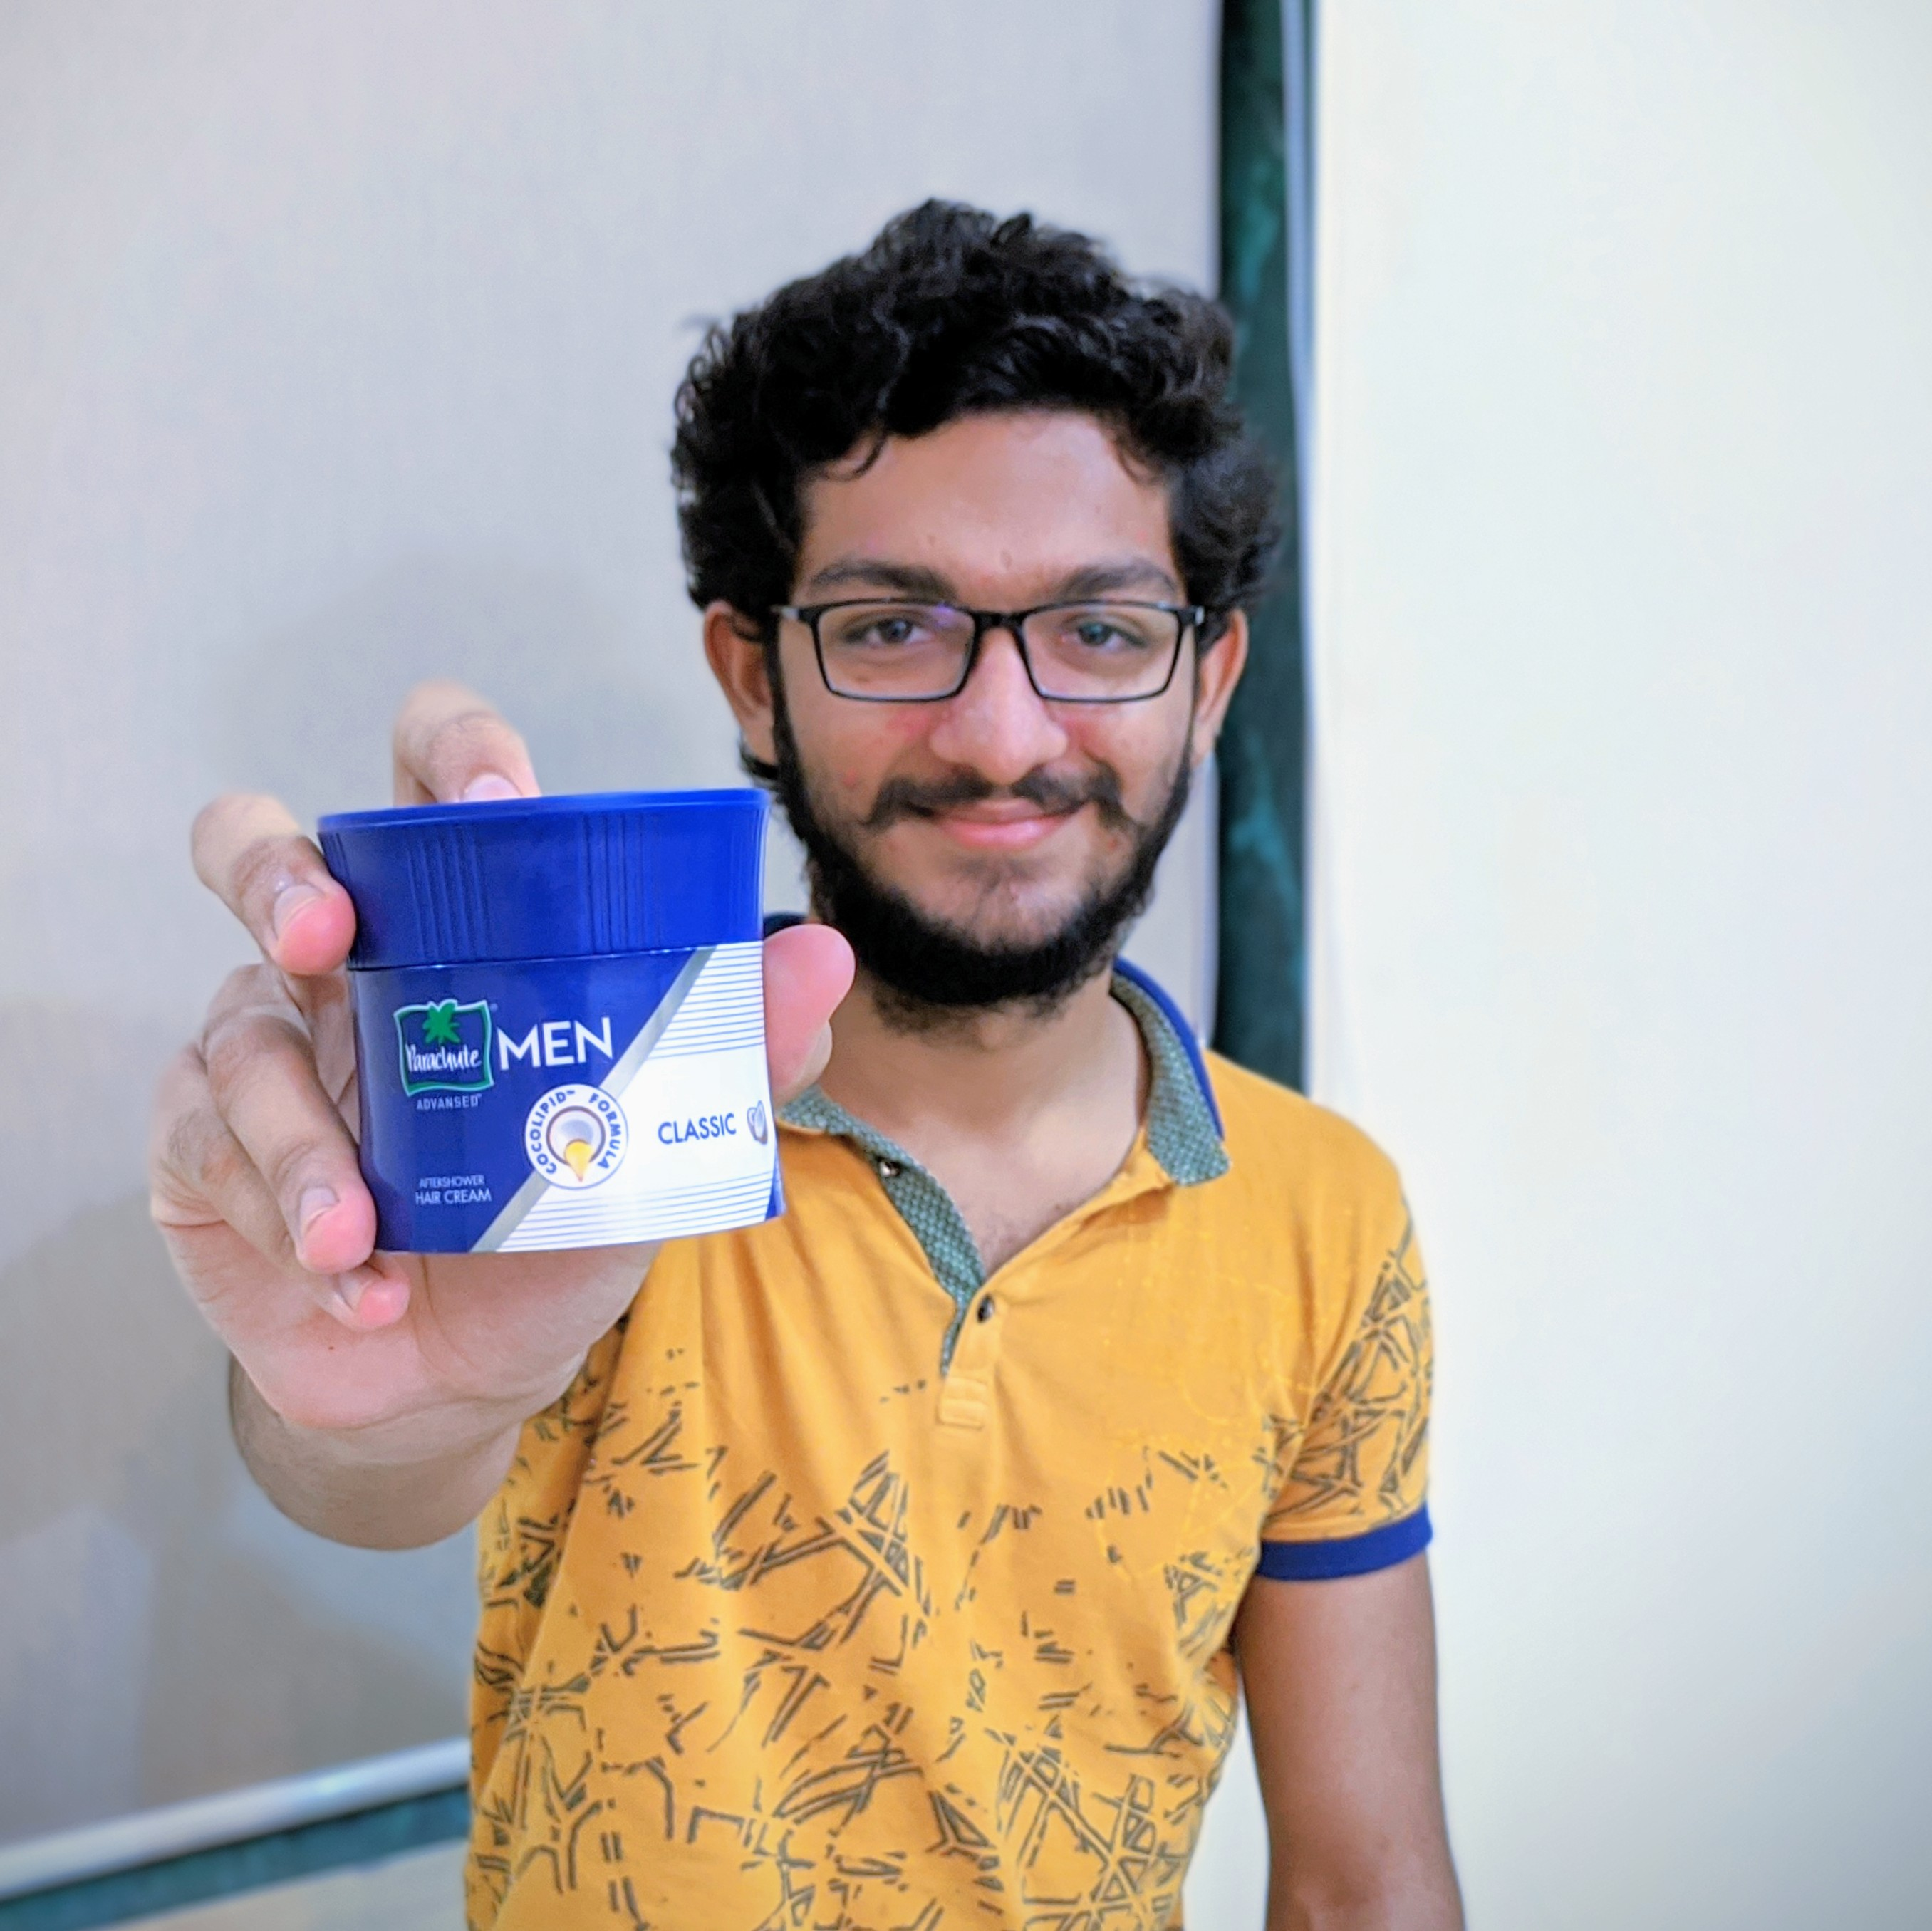 Parachute Advansed Men After Shower Hair Cream, Classic pic 2-Must Buy For Every Men-By nisarg_mehta